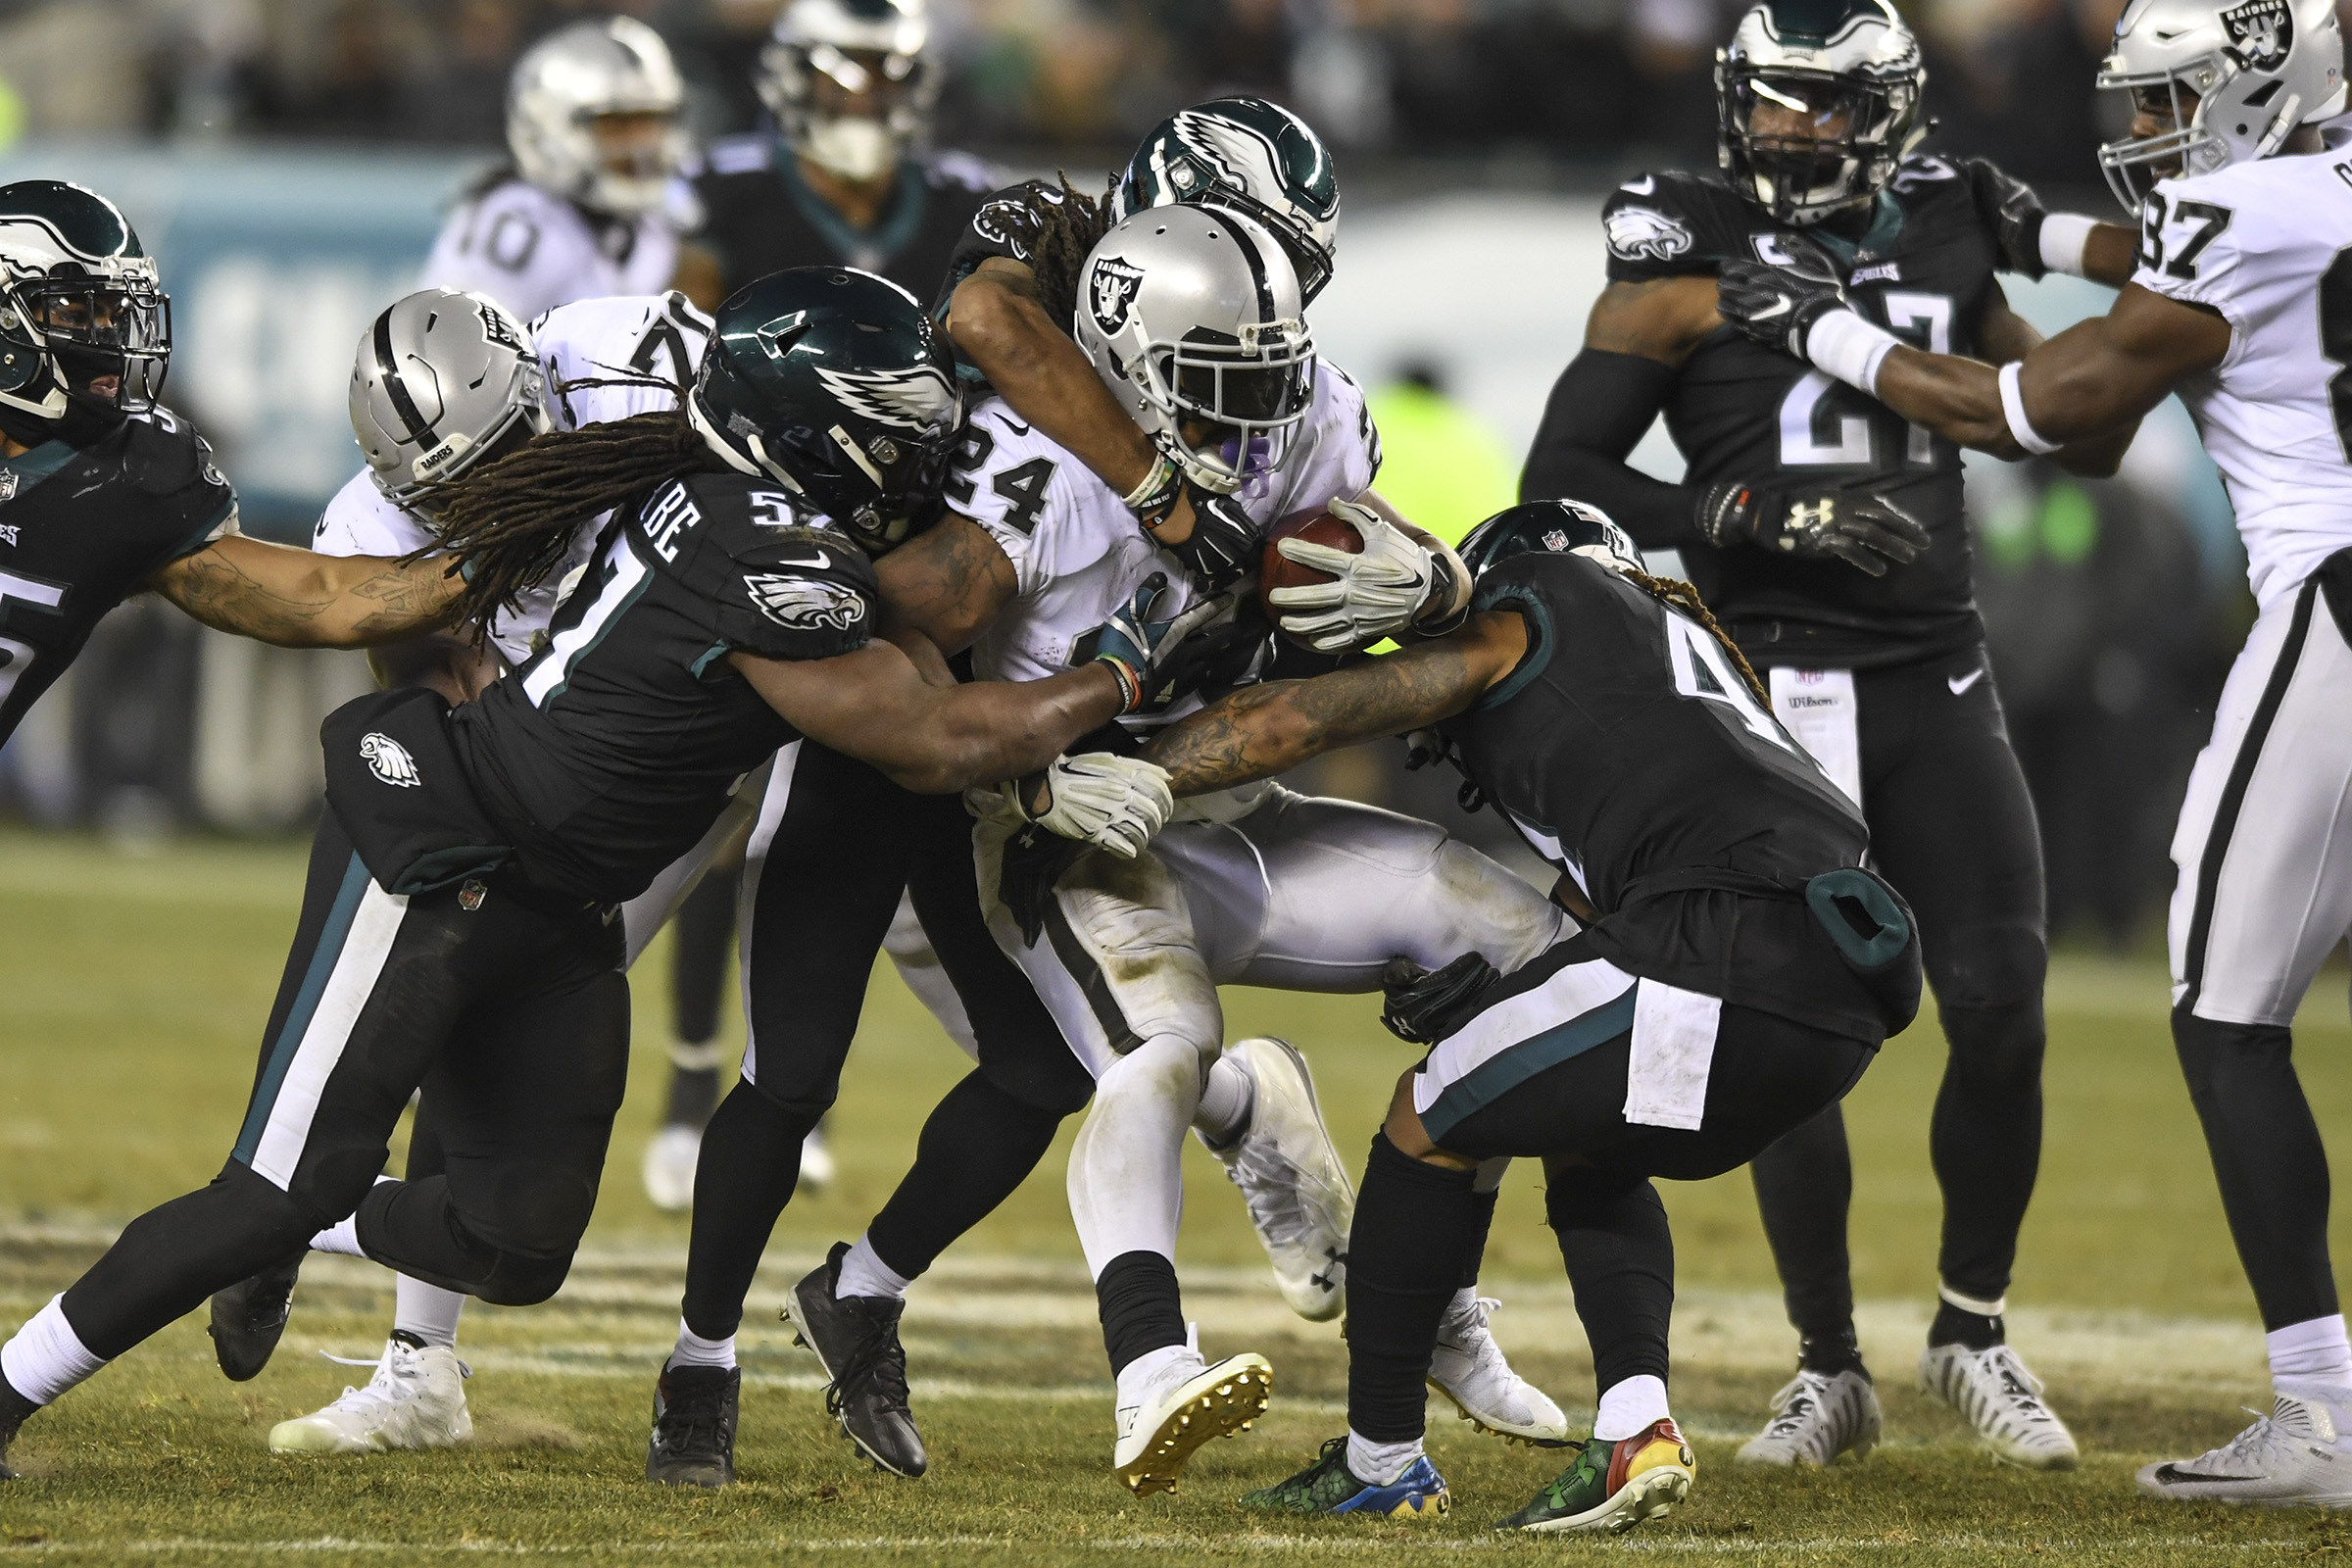 Raiders running back Marshawn Lynch is gang-tackled by Eagles Dannell Ellerbe (left), Rodney McLeod (center) and cornerback Ronald Darby in the second quarter.